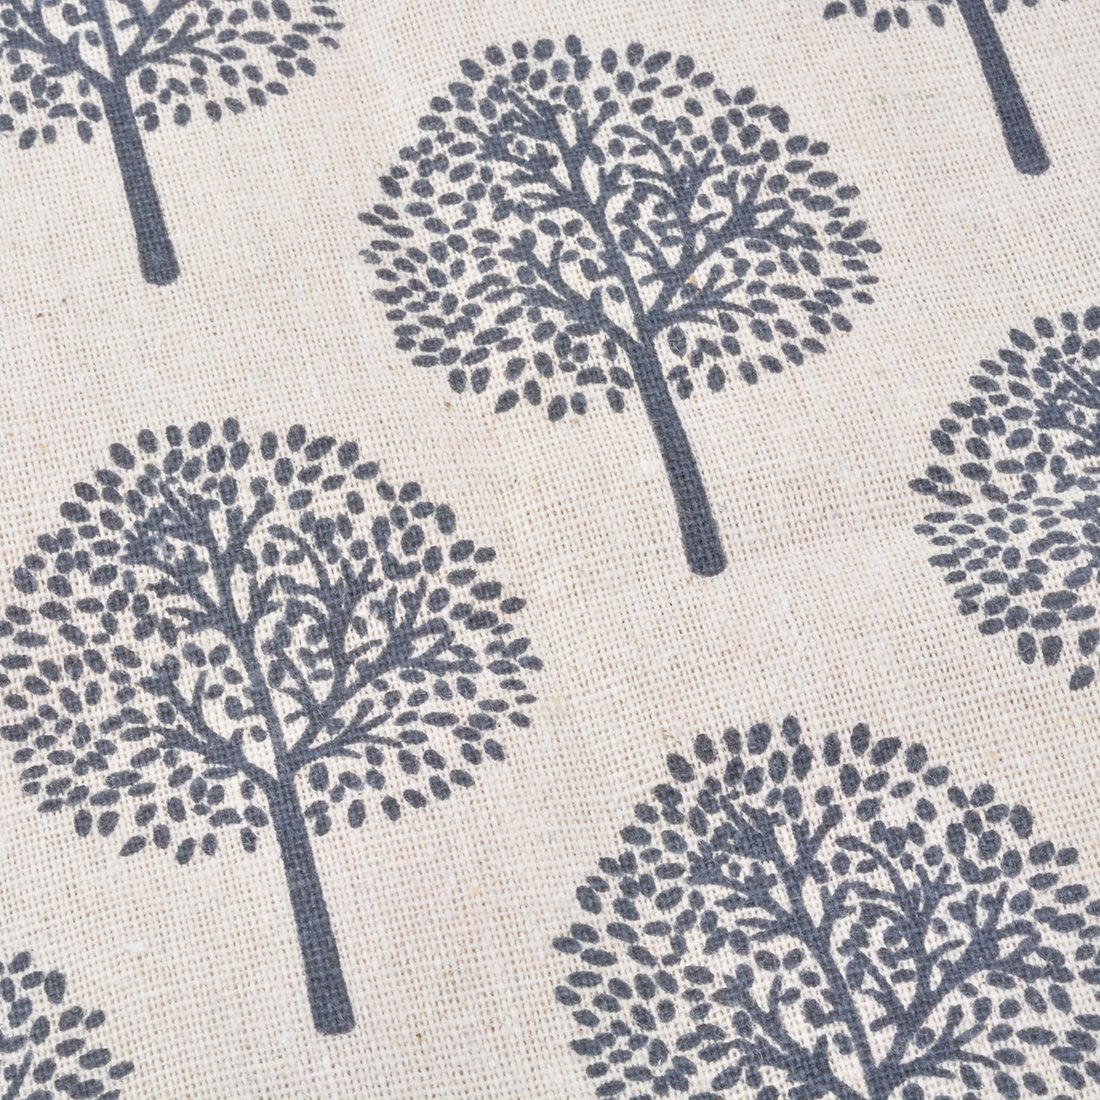 Souarts Linen Color Tree Fabric Bundles Quilting Sewing Patchwork Clothes DIY Craft 1 Sheet